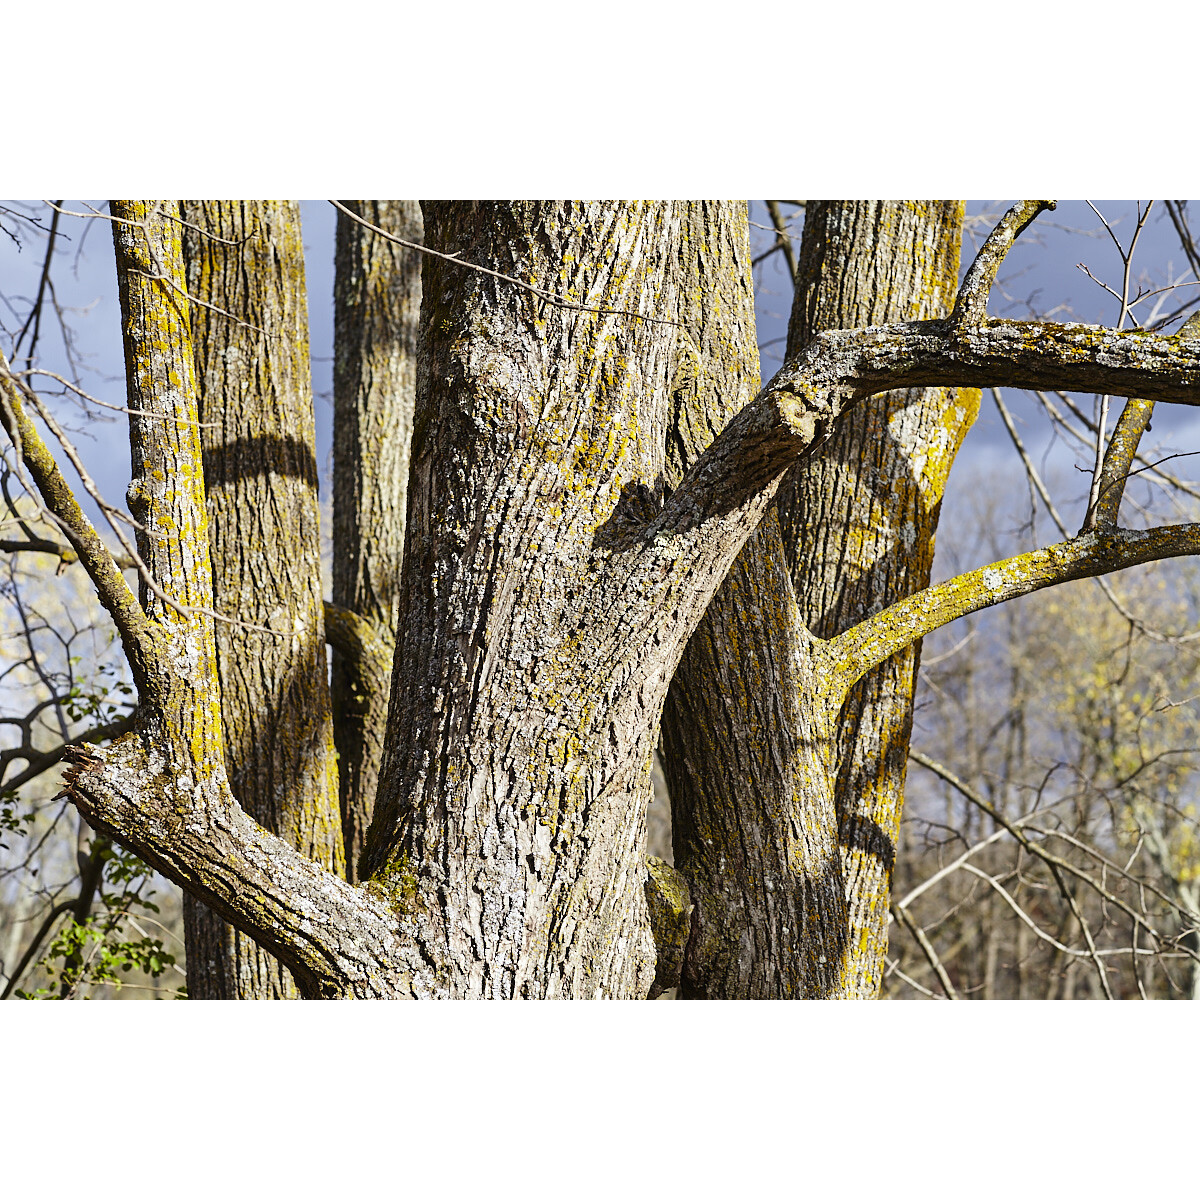 Untitled (Tree Trunks)